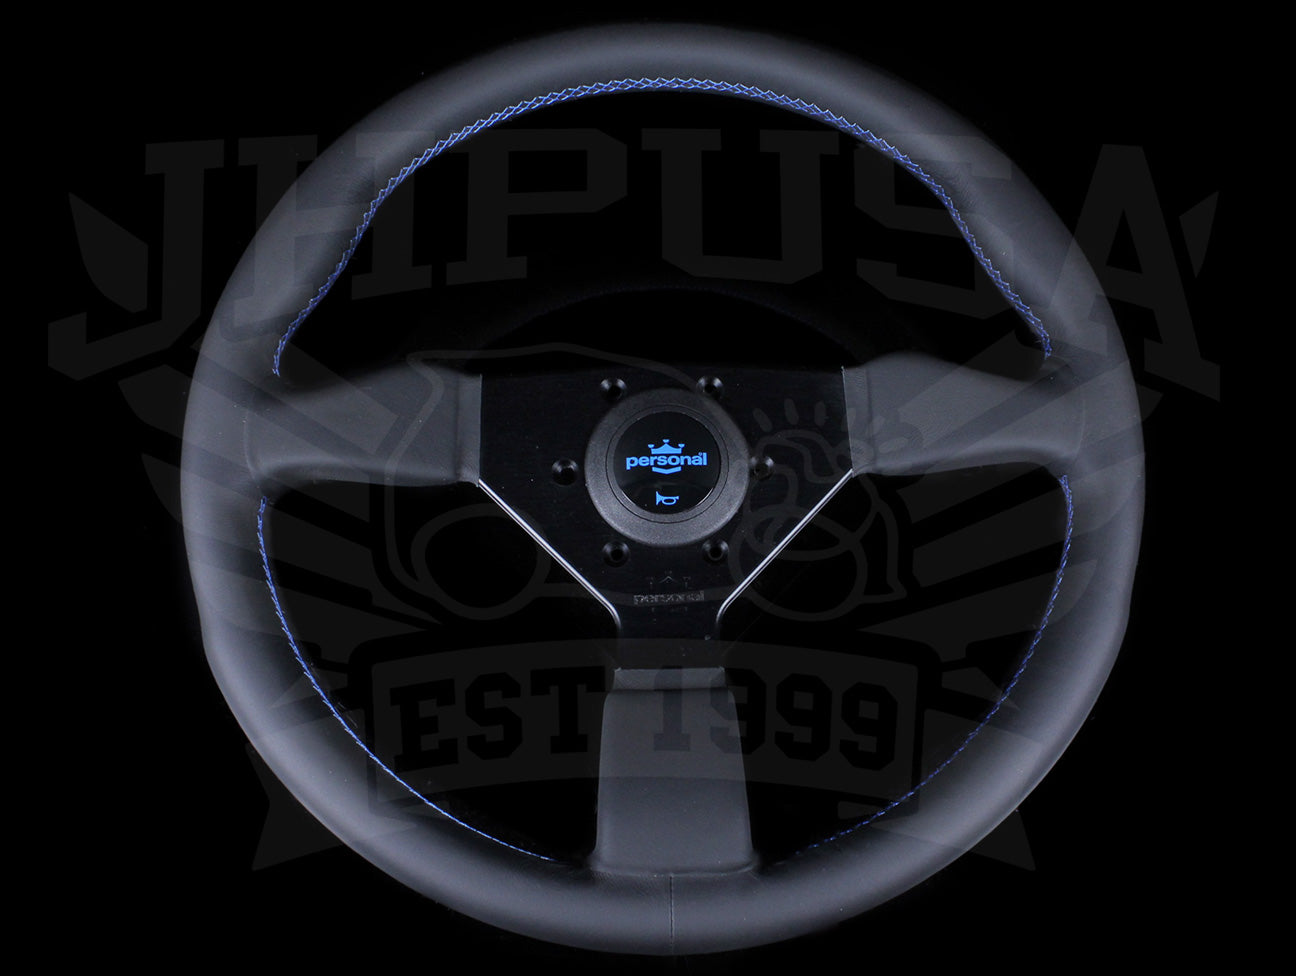 Personal Neo Grinta 350mm Steering Wheel - Black Leather / Blue Stitch